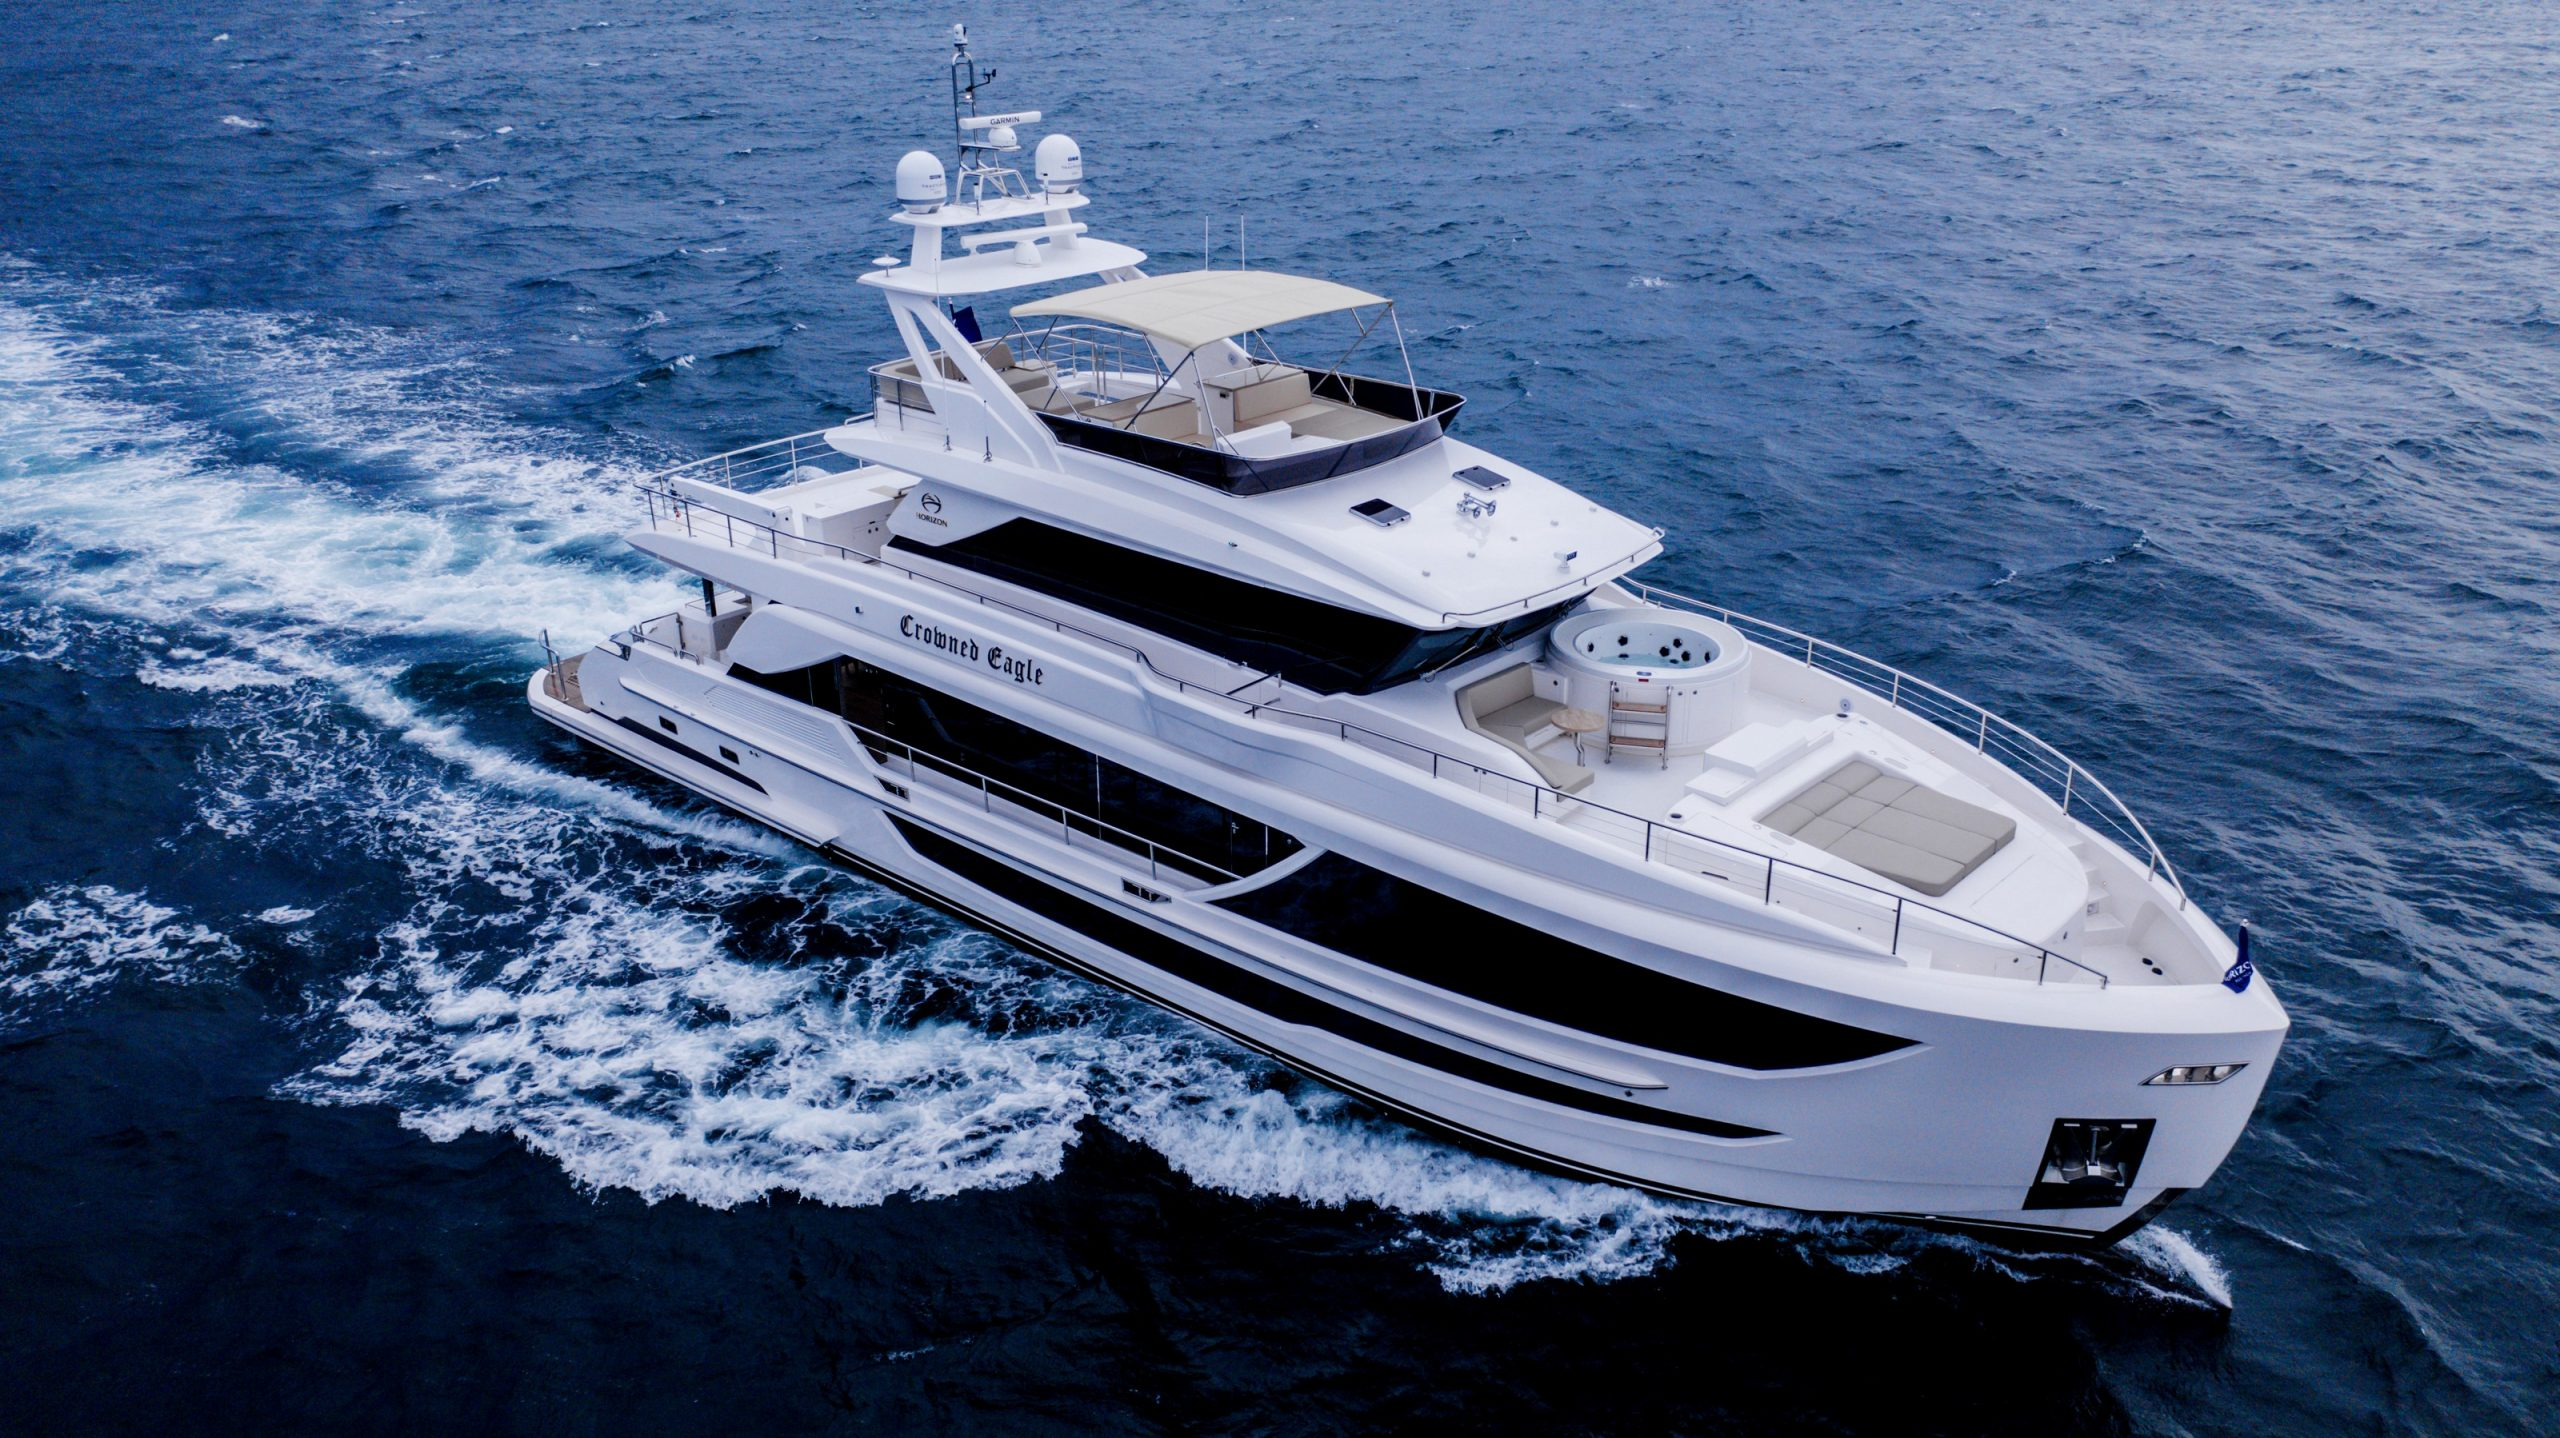 Yate FD92 CROWNED EAGLE de Horizon Yachts